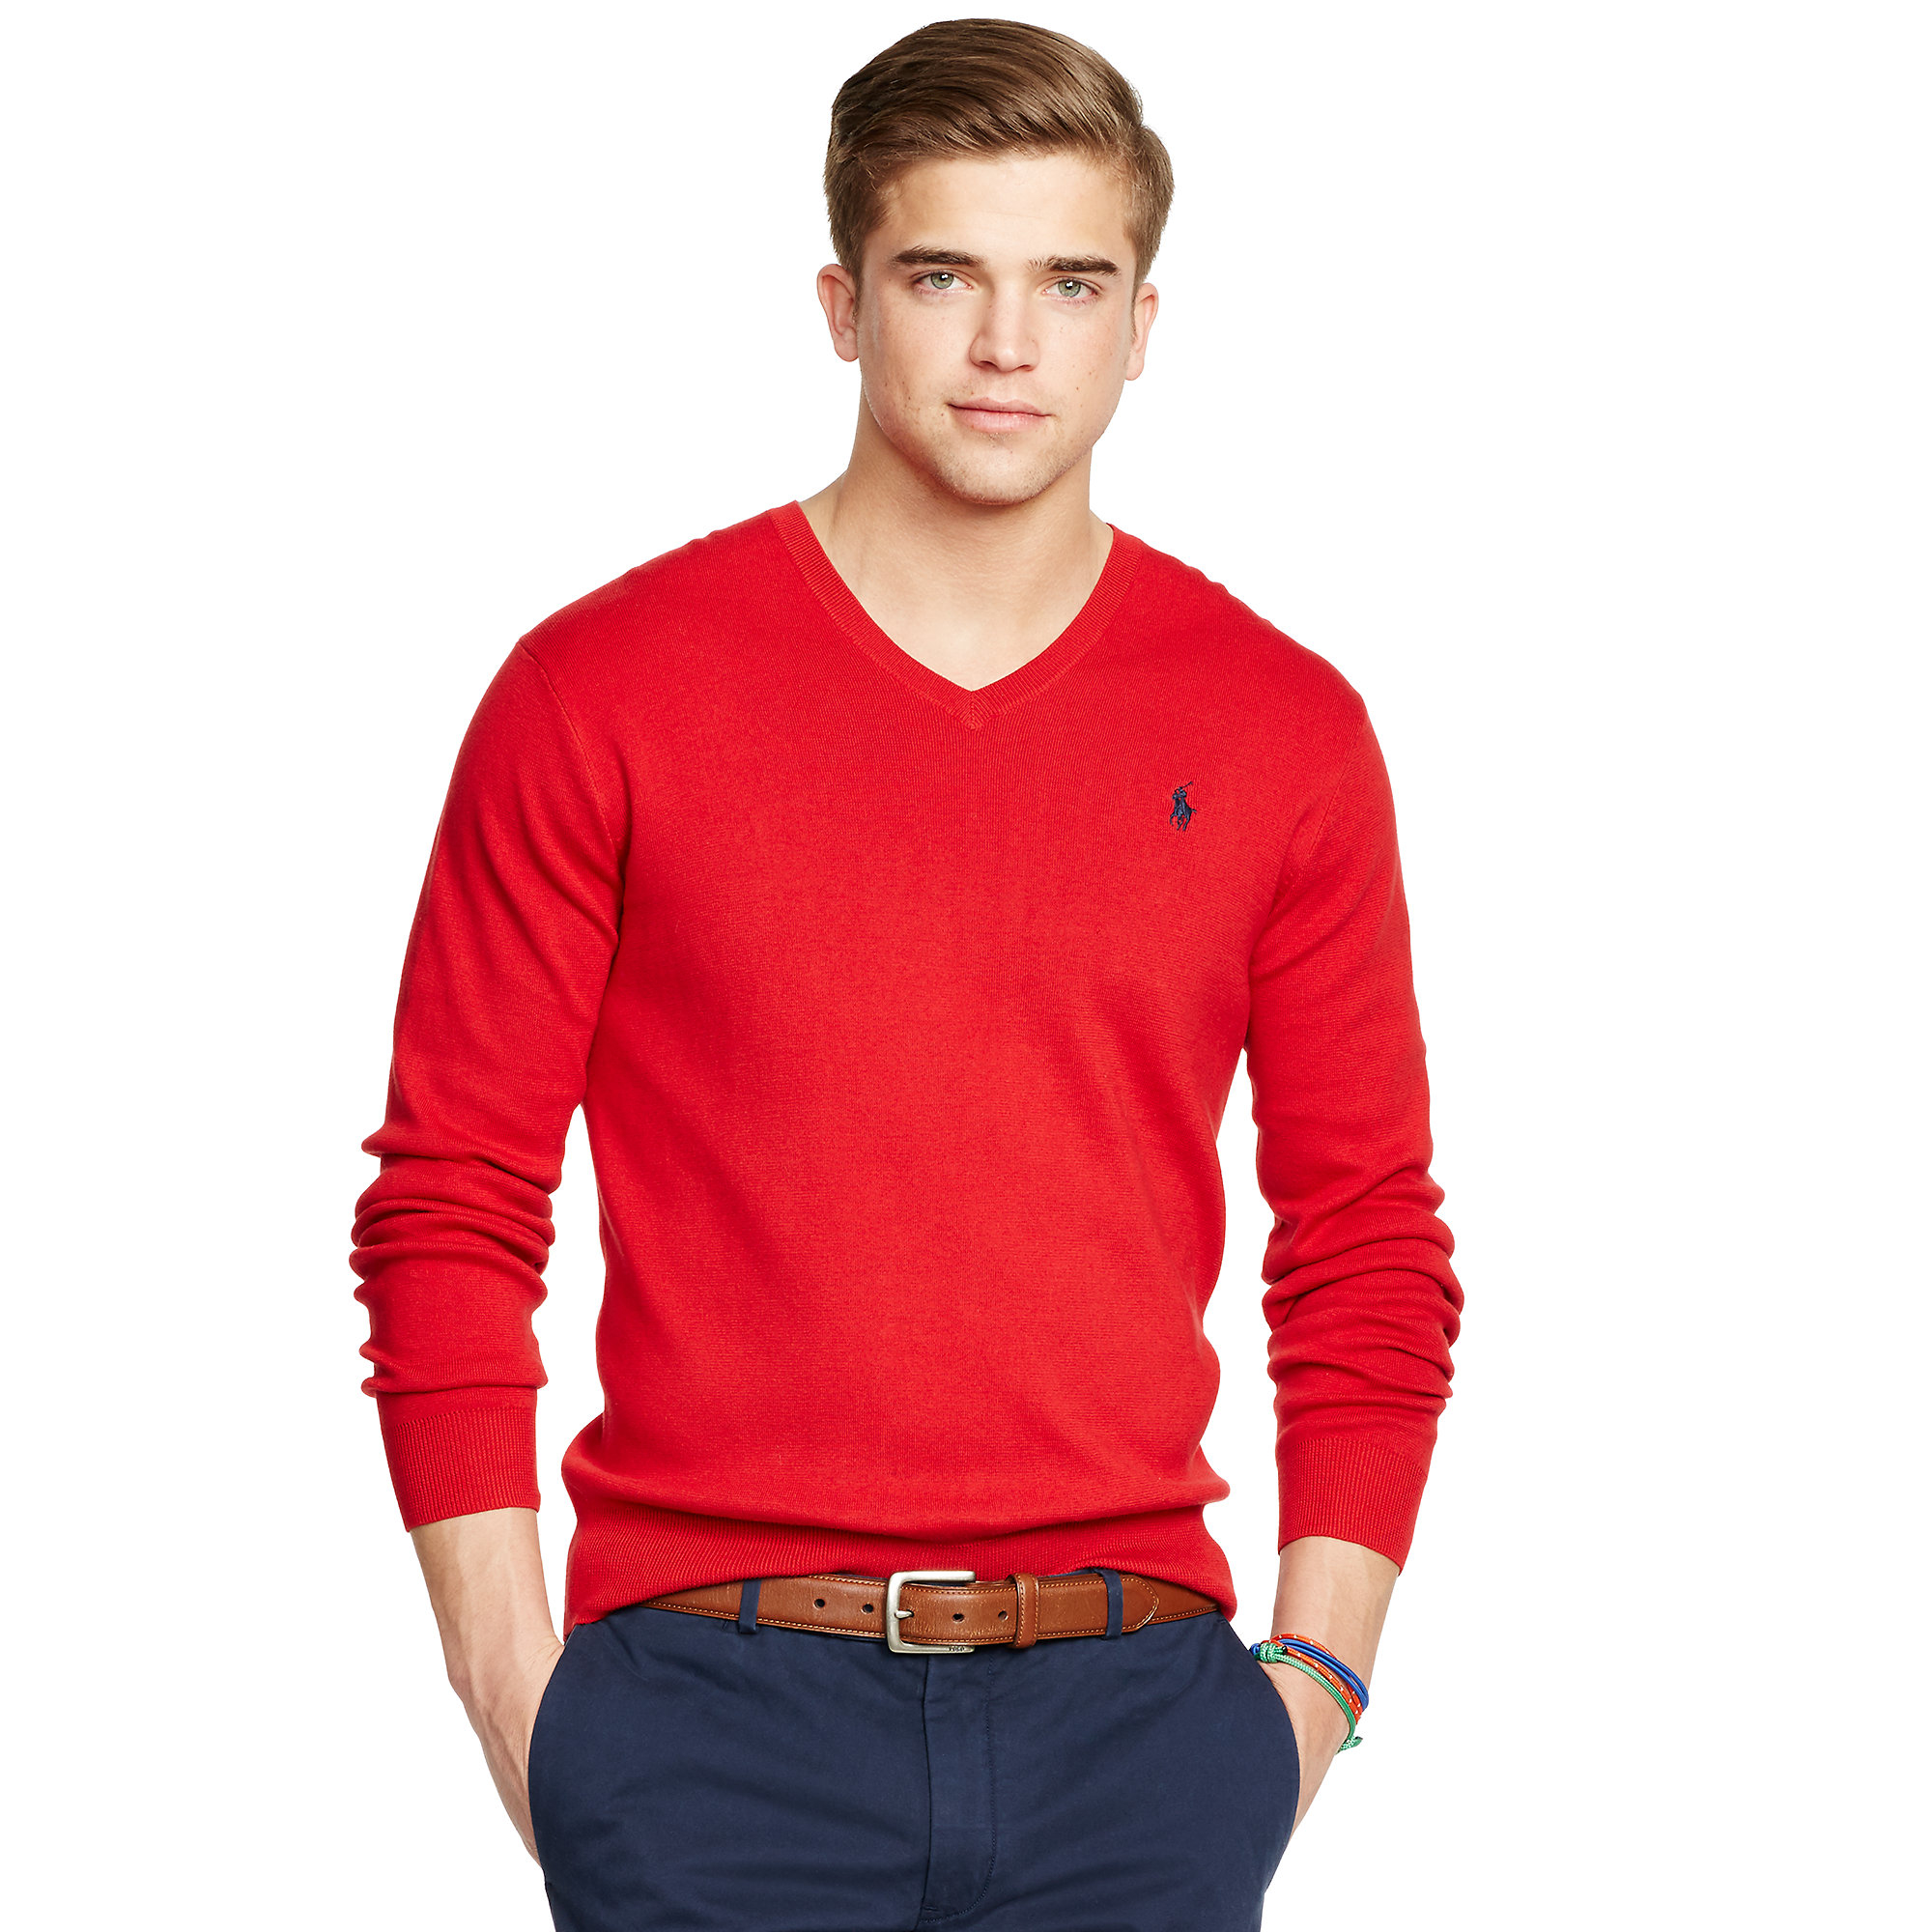 Polo ralph lauren Pima Cotton V-neck Sweater in Red | Lyst